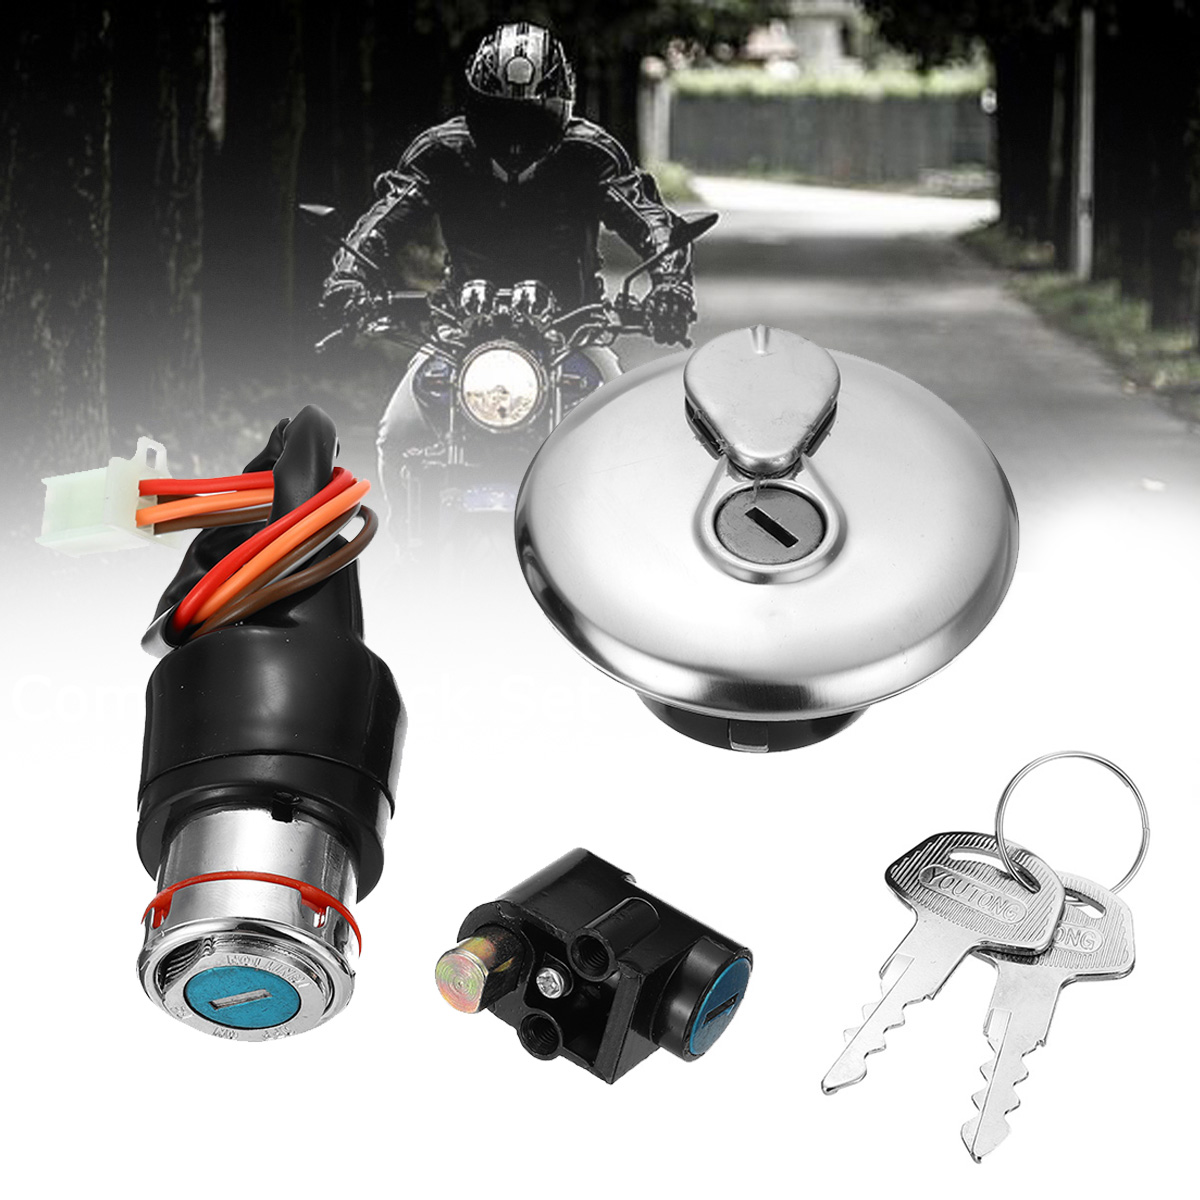 Motocross Bike Complete Lock Set Ignition Main Switch 2 Keys Petrol Cap For Suzuki GN125 GN 125 Motorcycle Moto Accessories